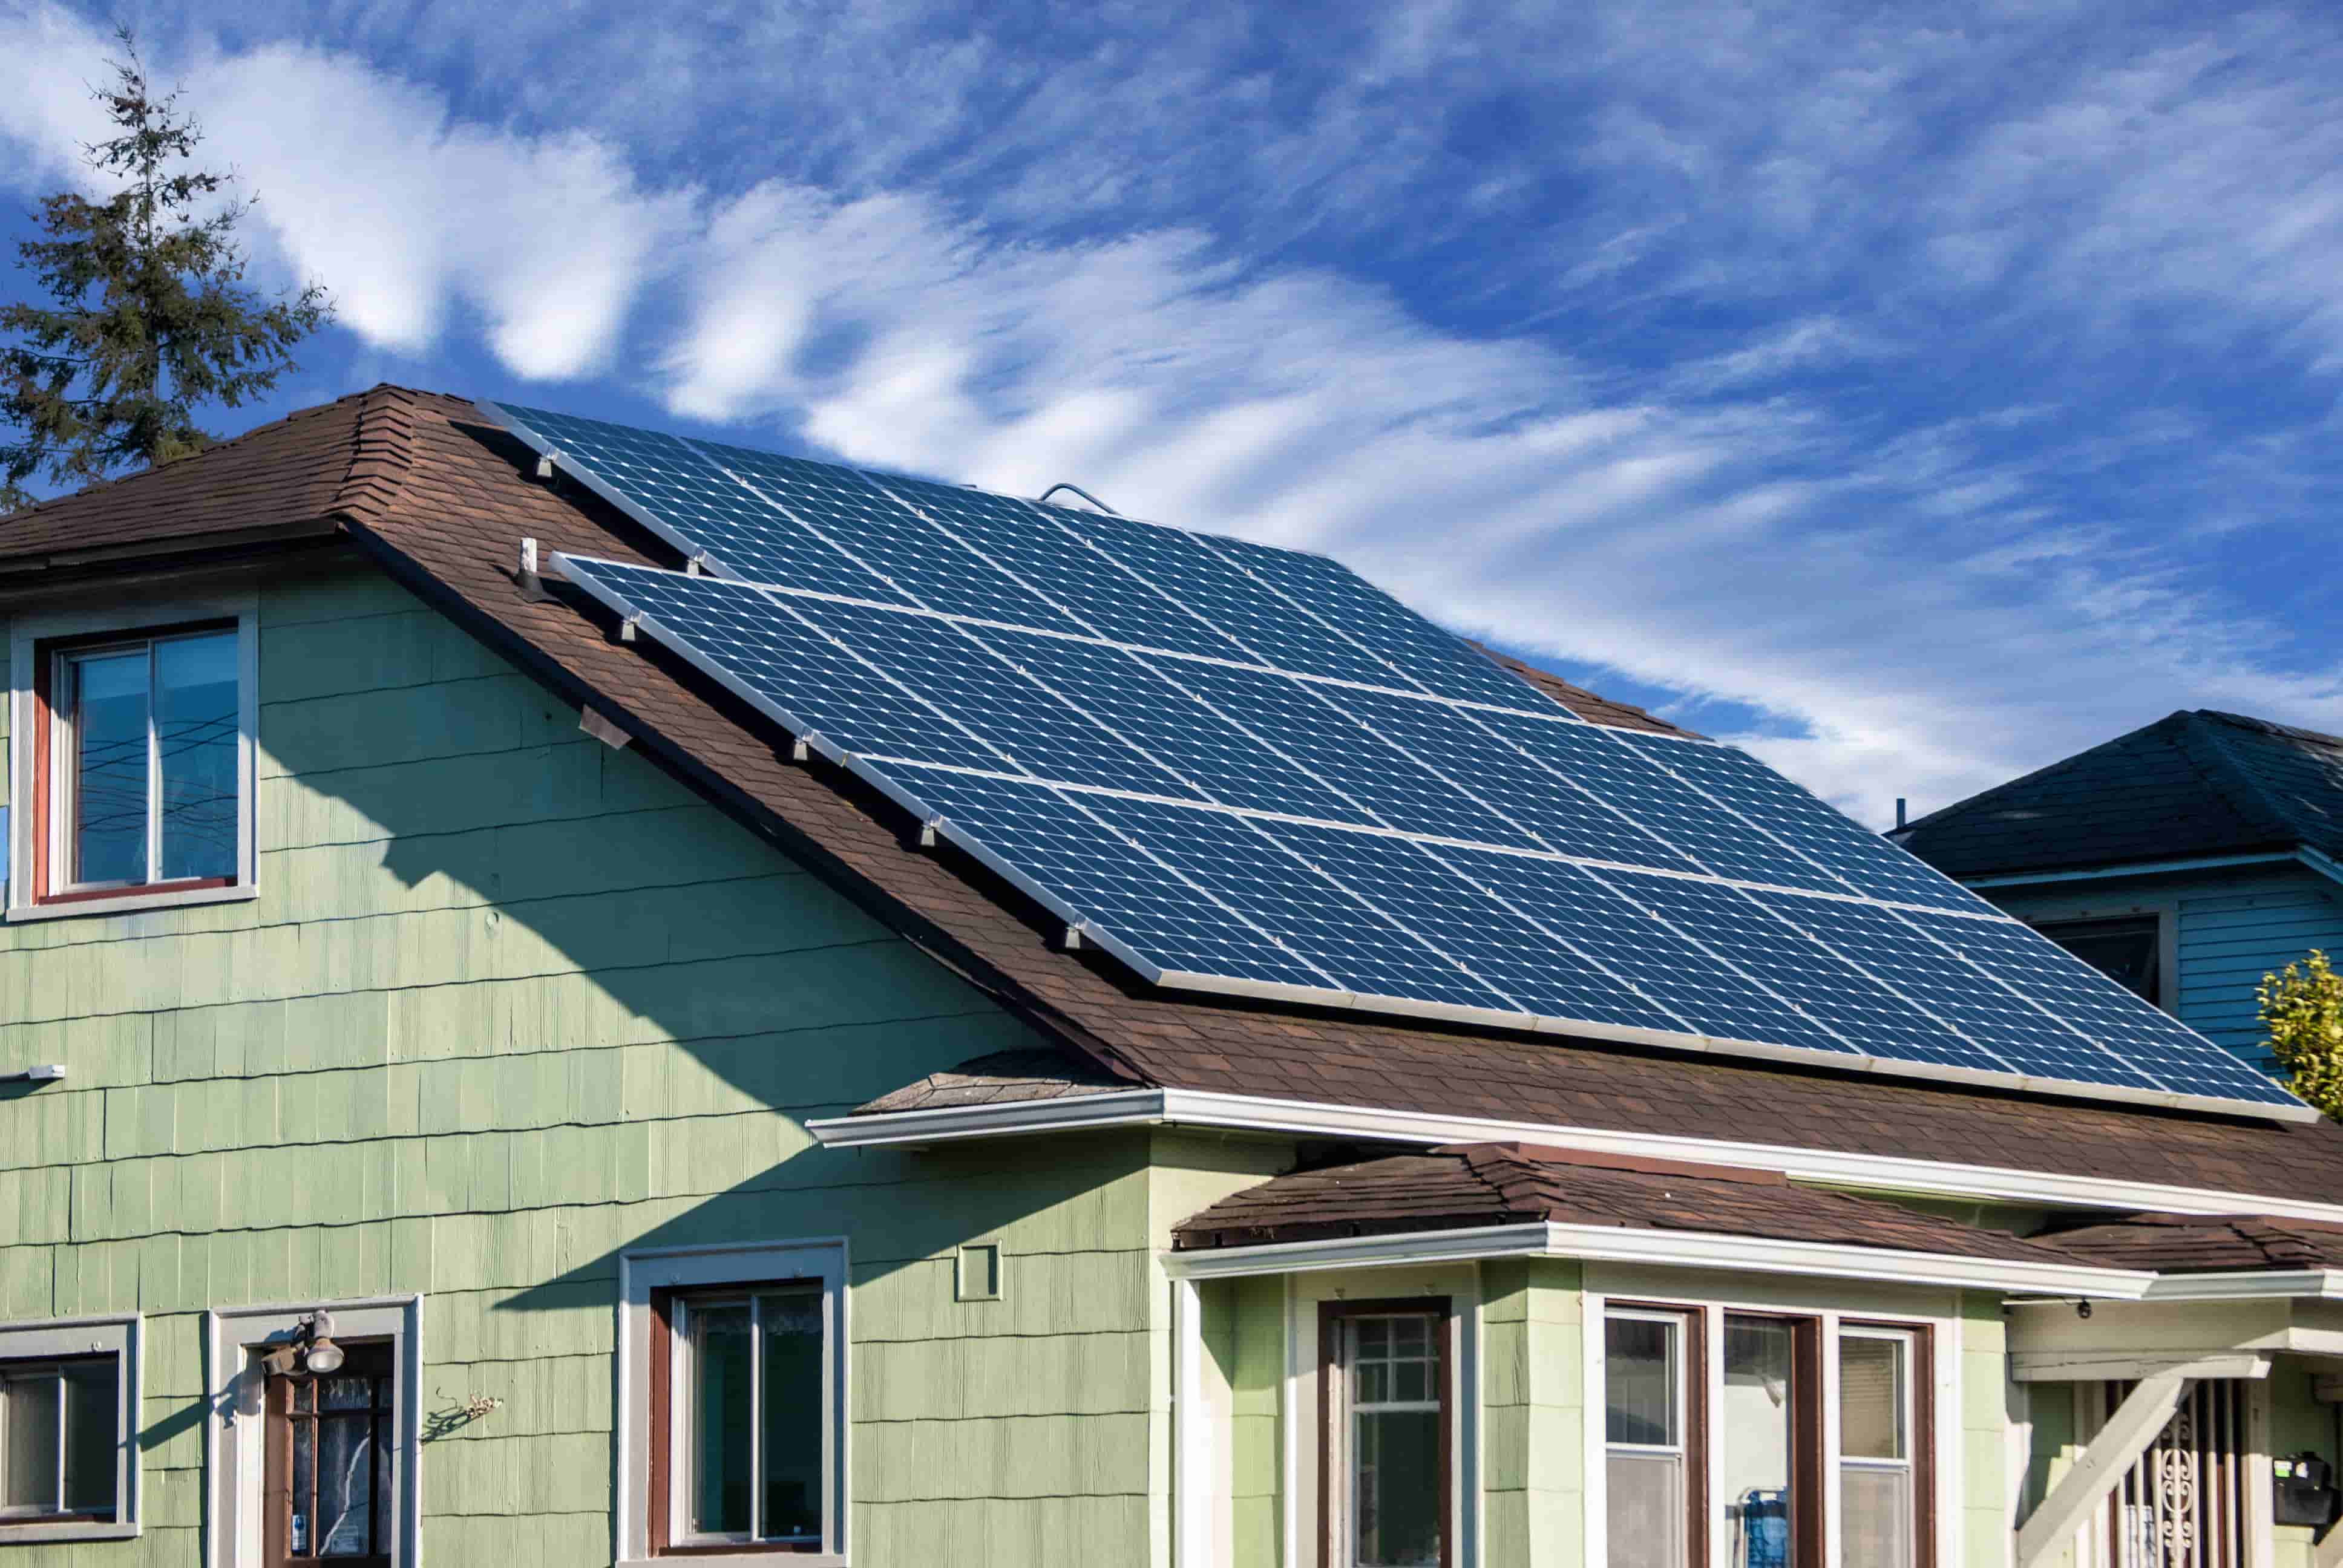 solar prices have dropped by 80% since 2008.